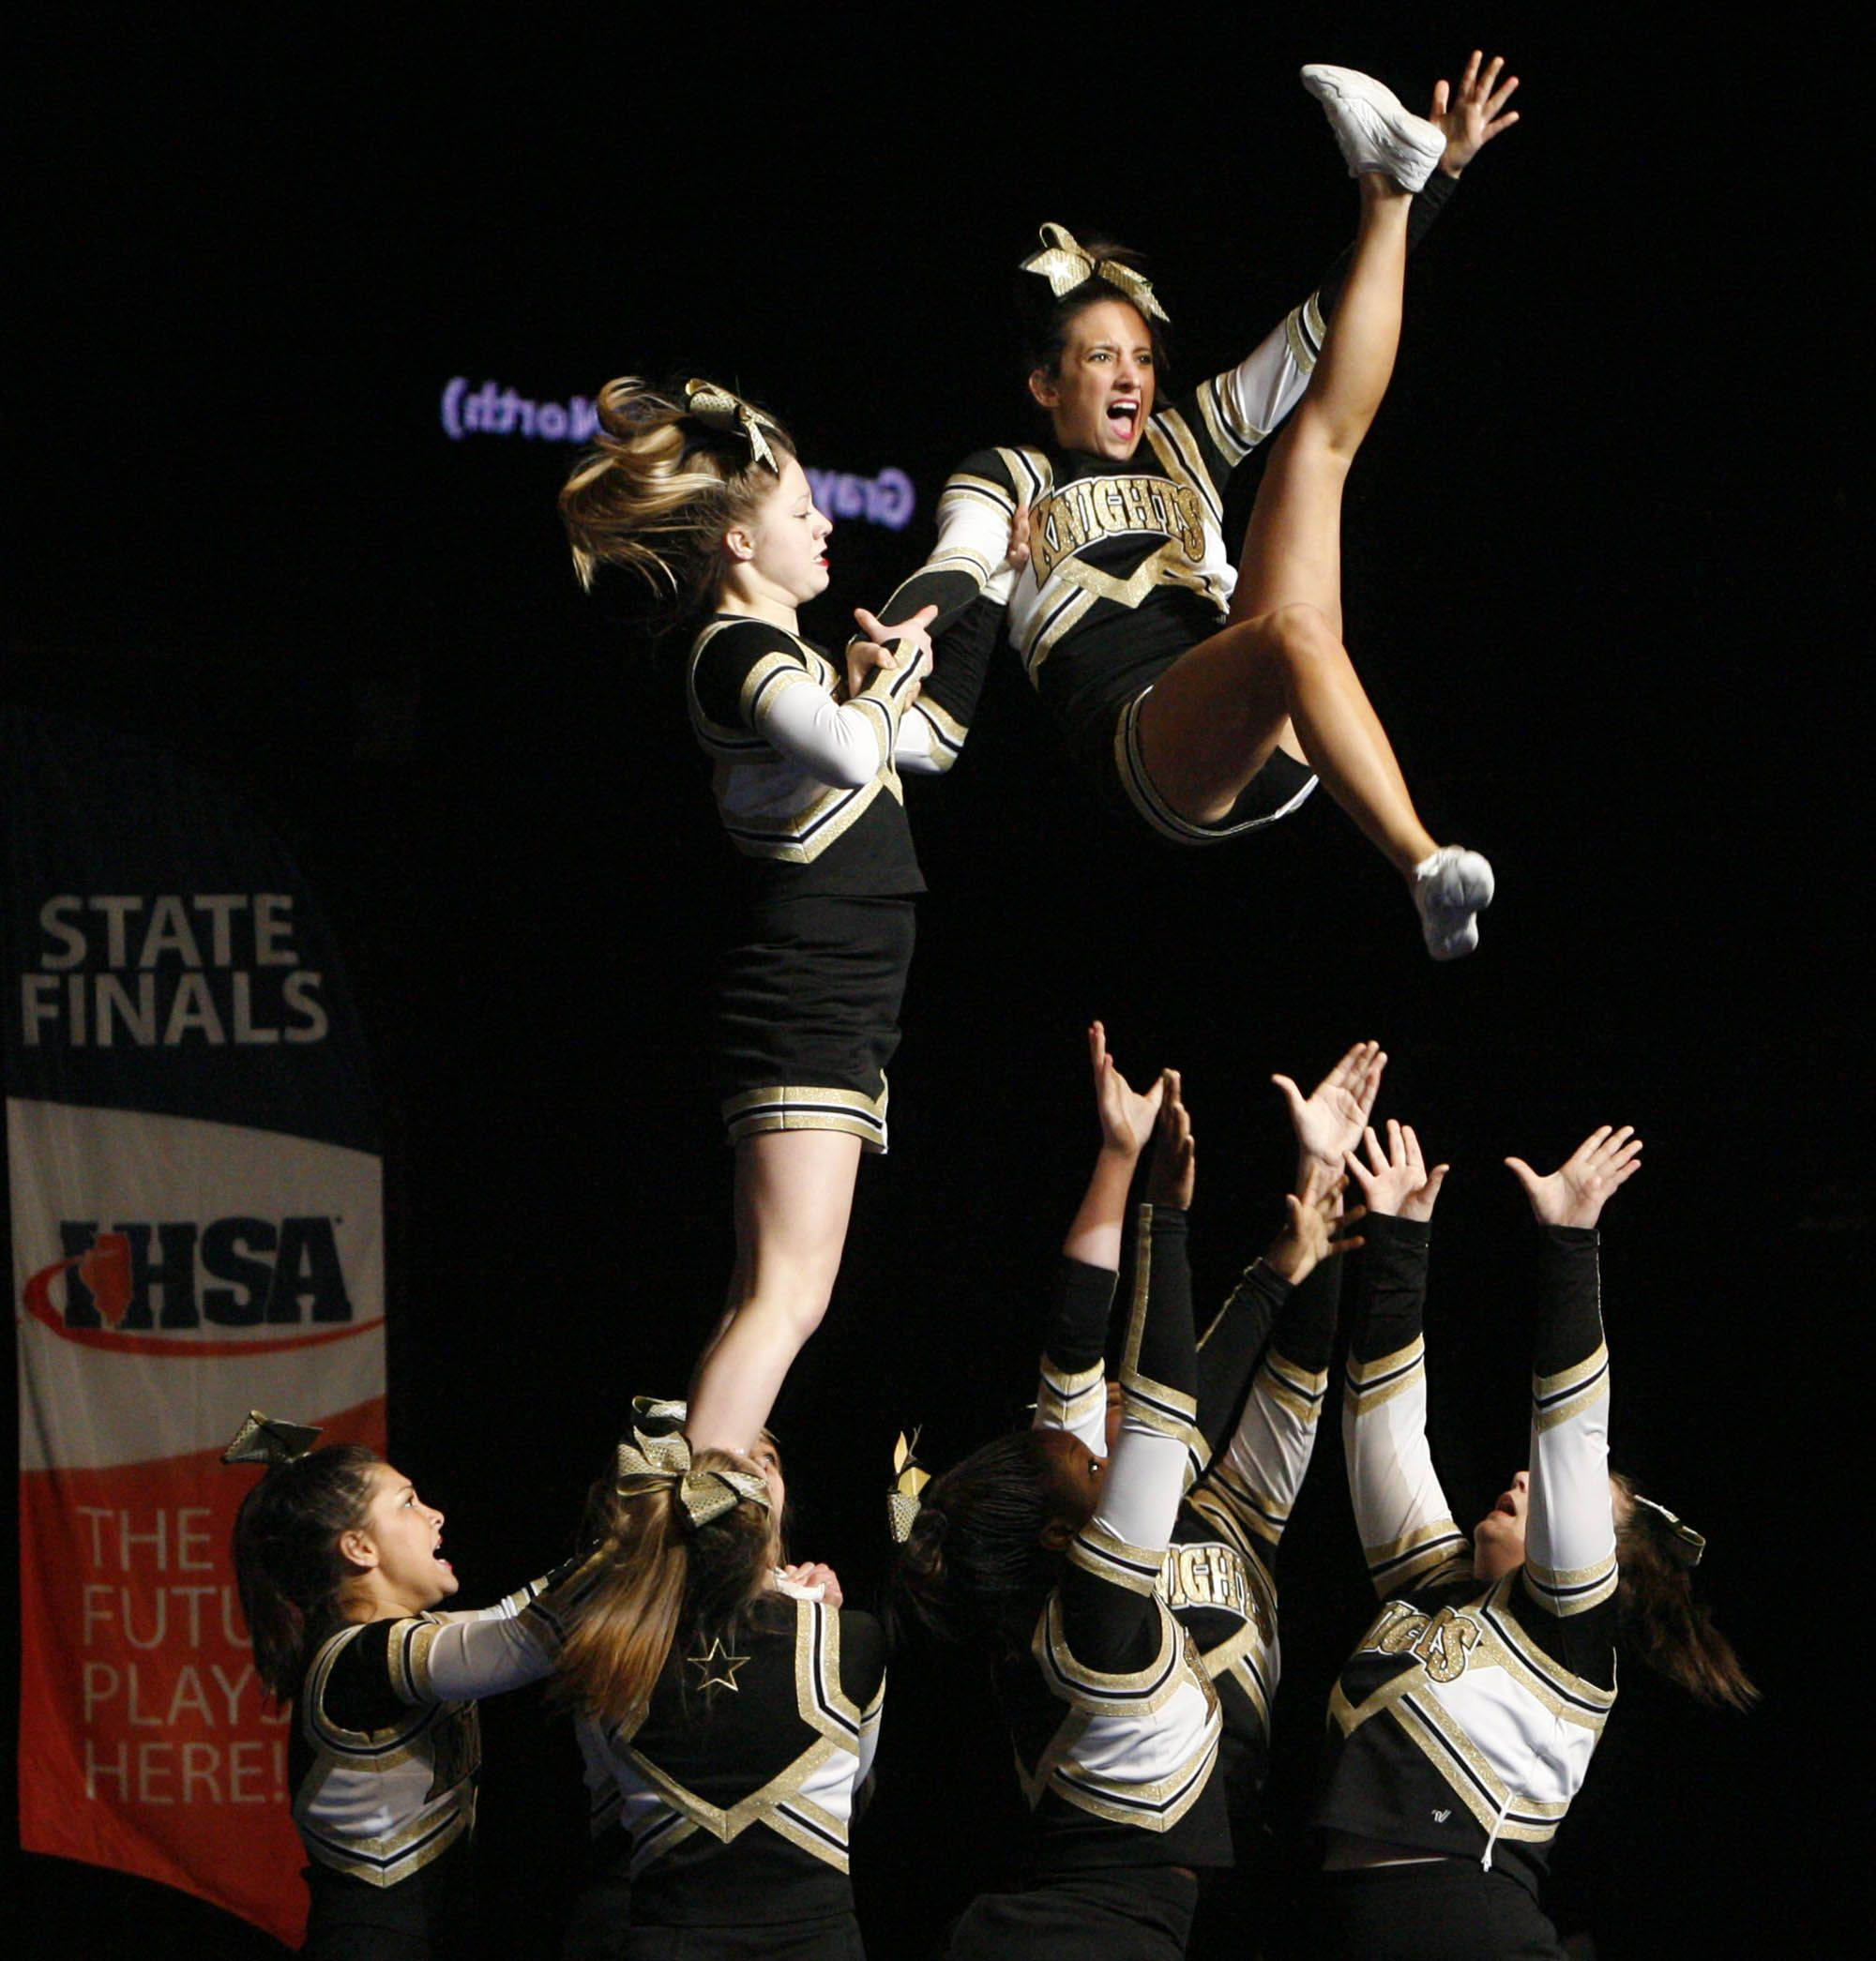 Grayslake North competes in the mediuml team category at IHSA cheerleading state finals at U.S. Cellular Coliseum in Bloomington on Saturday, February 4th.